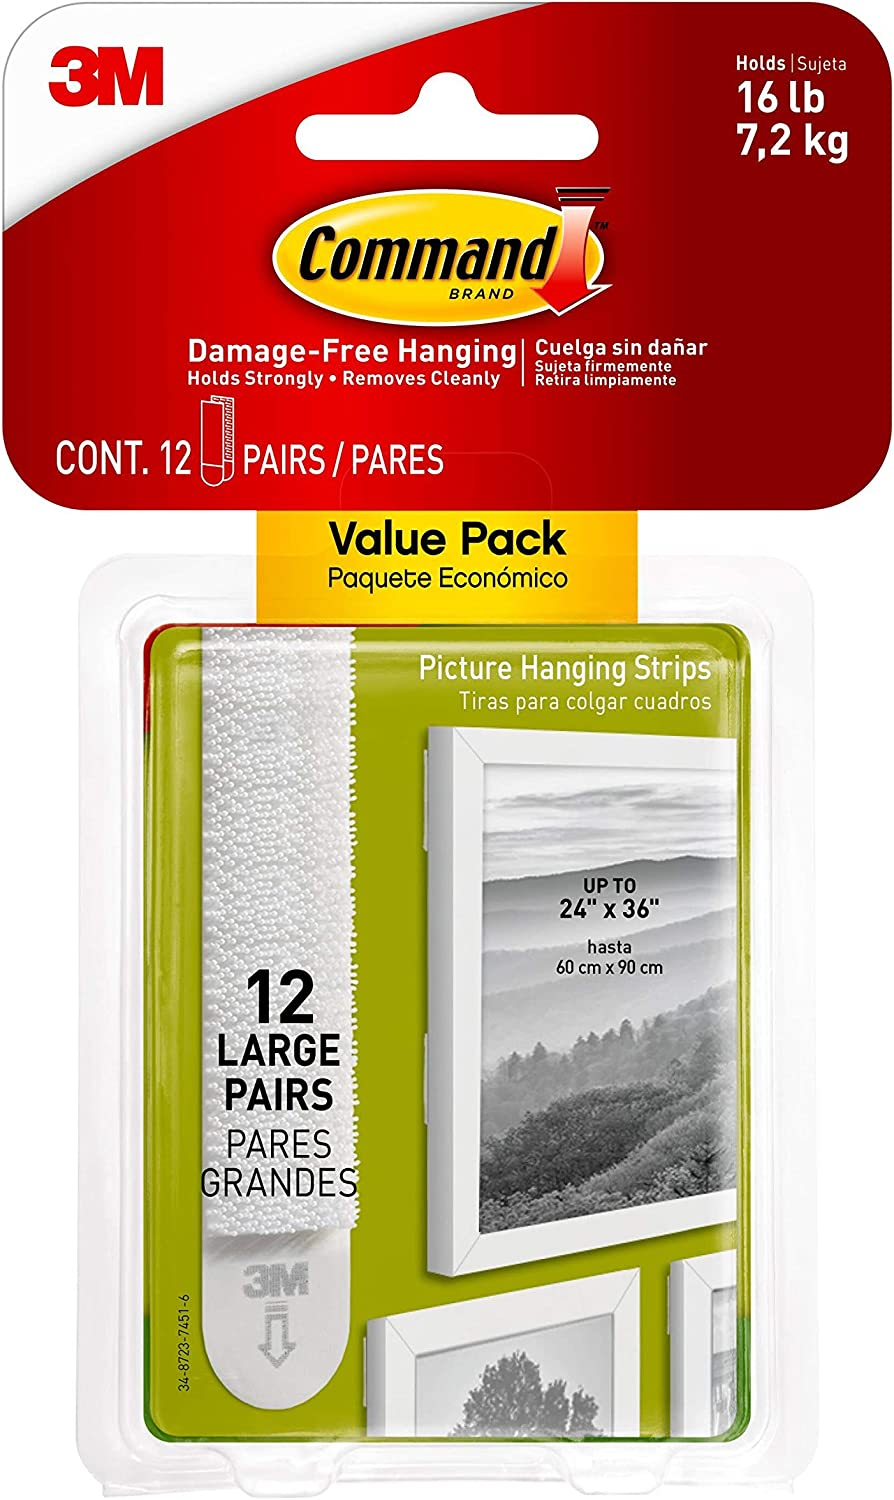 Command Max 48% OFF Free Shipping Cheap Bargain Gift 17206-12ES 3M Large Photo Hangers or Str Tools Holes No